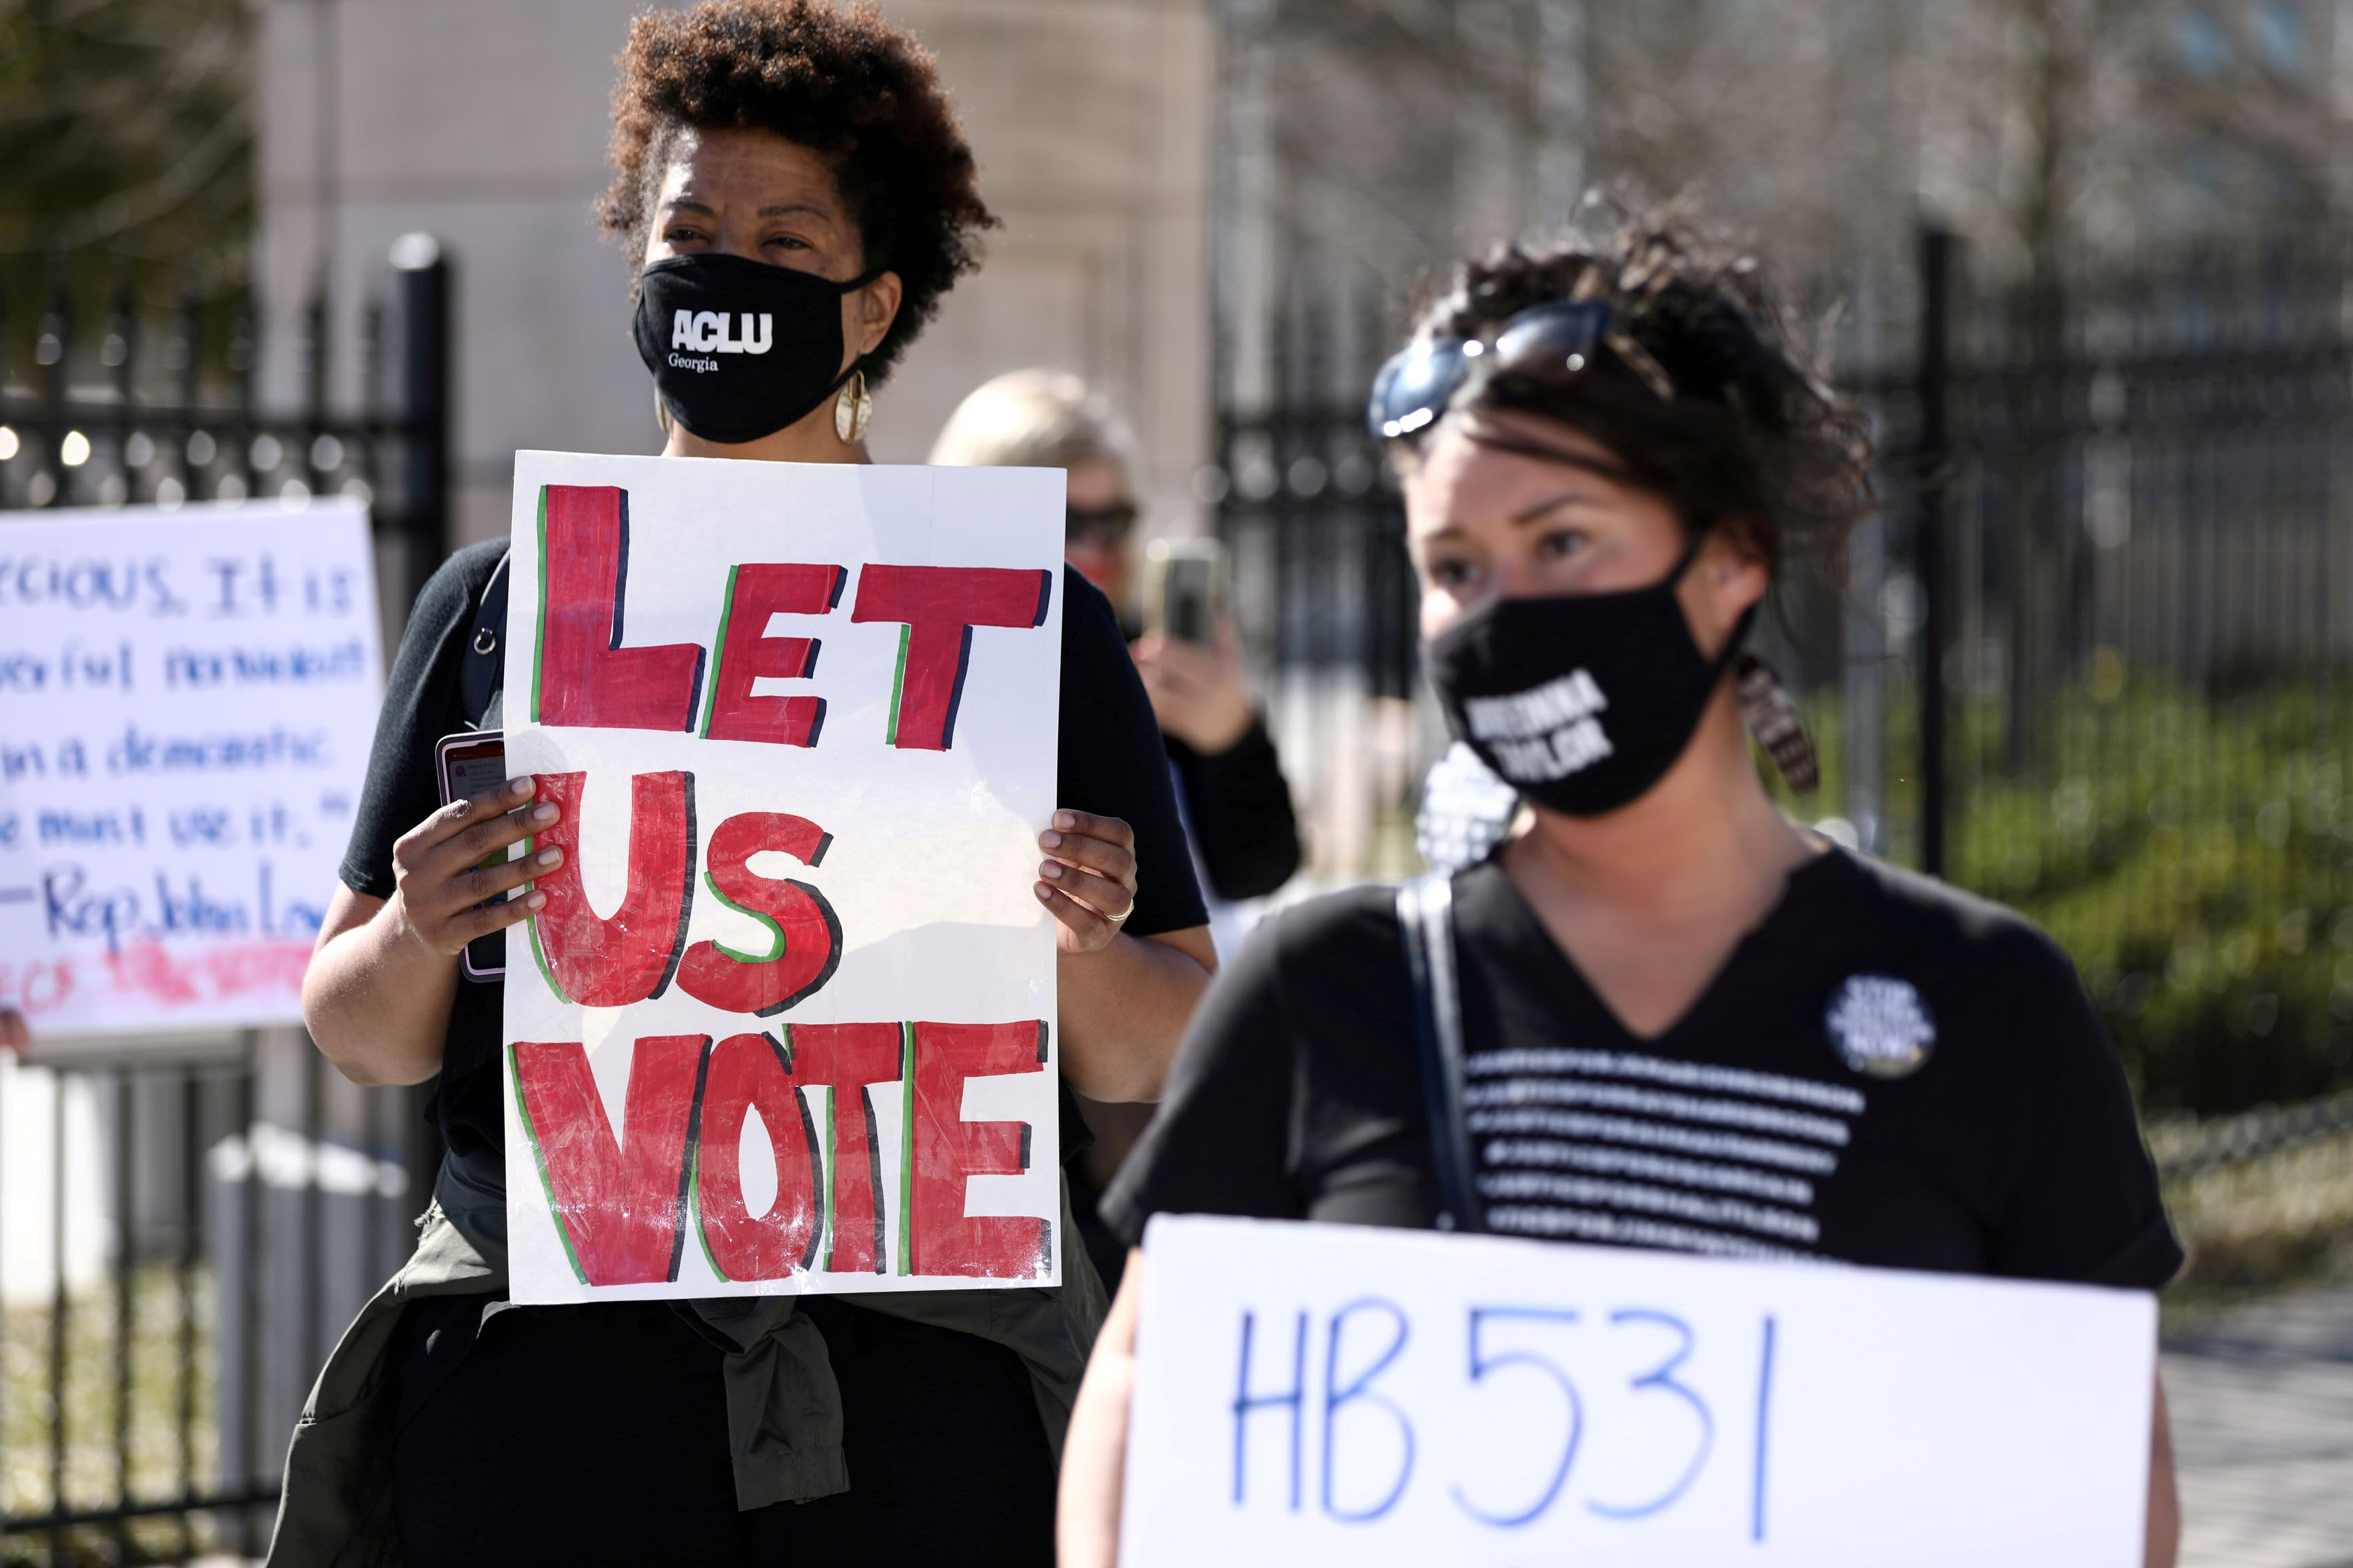 U.S. companies face boycott threats, mounting pressure to take sides in America's battle over voting rights